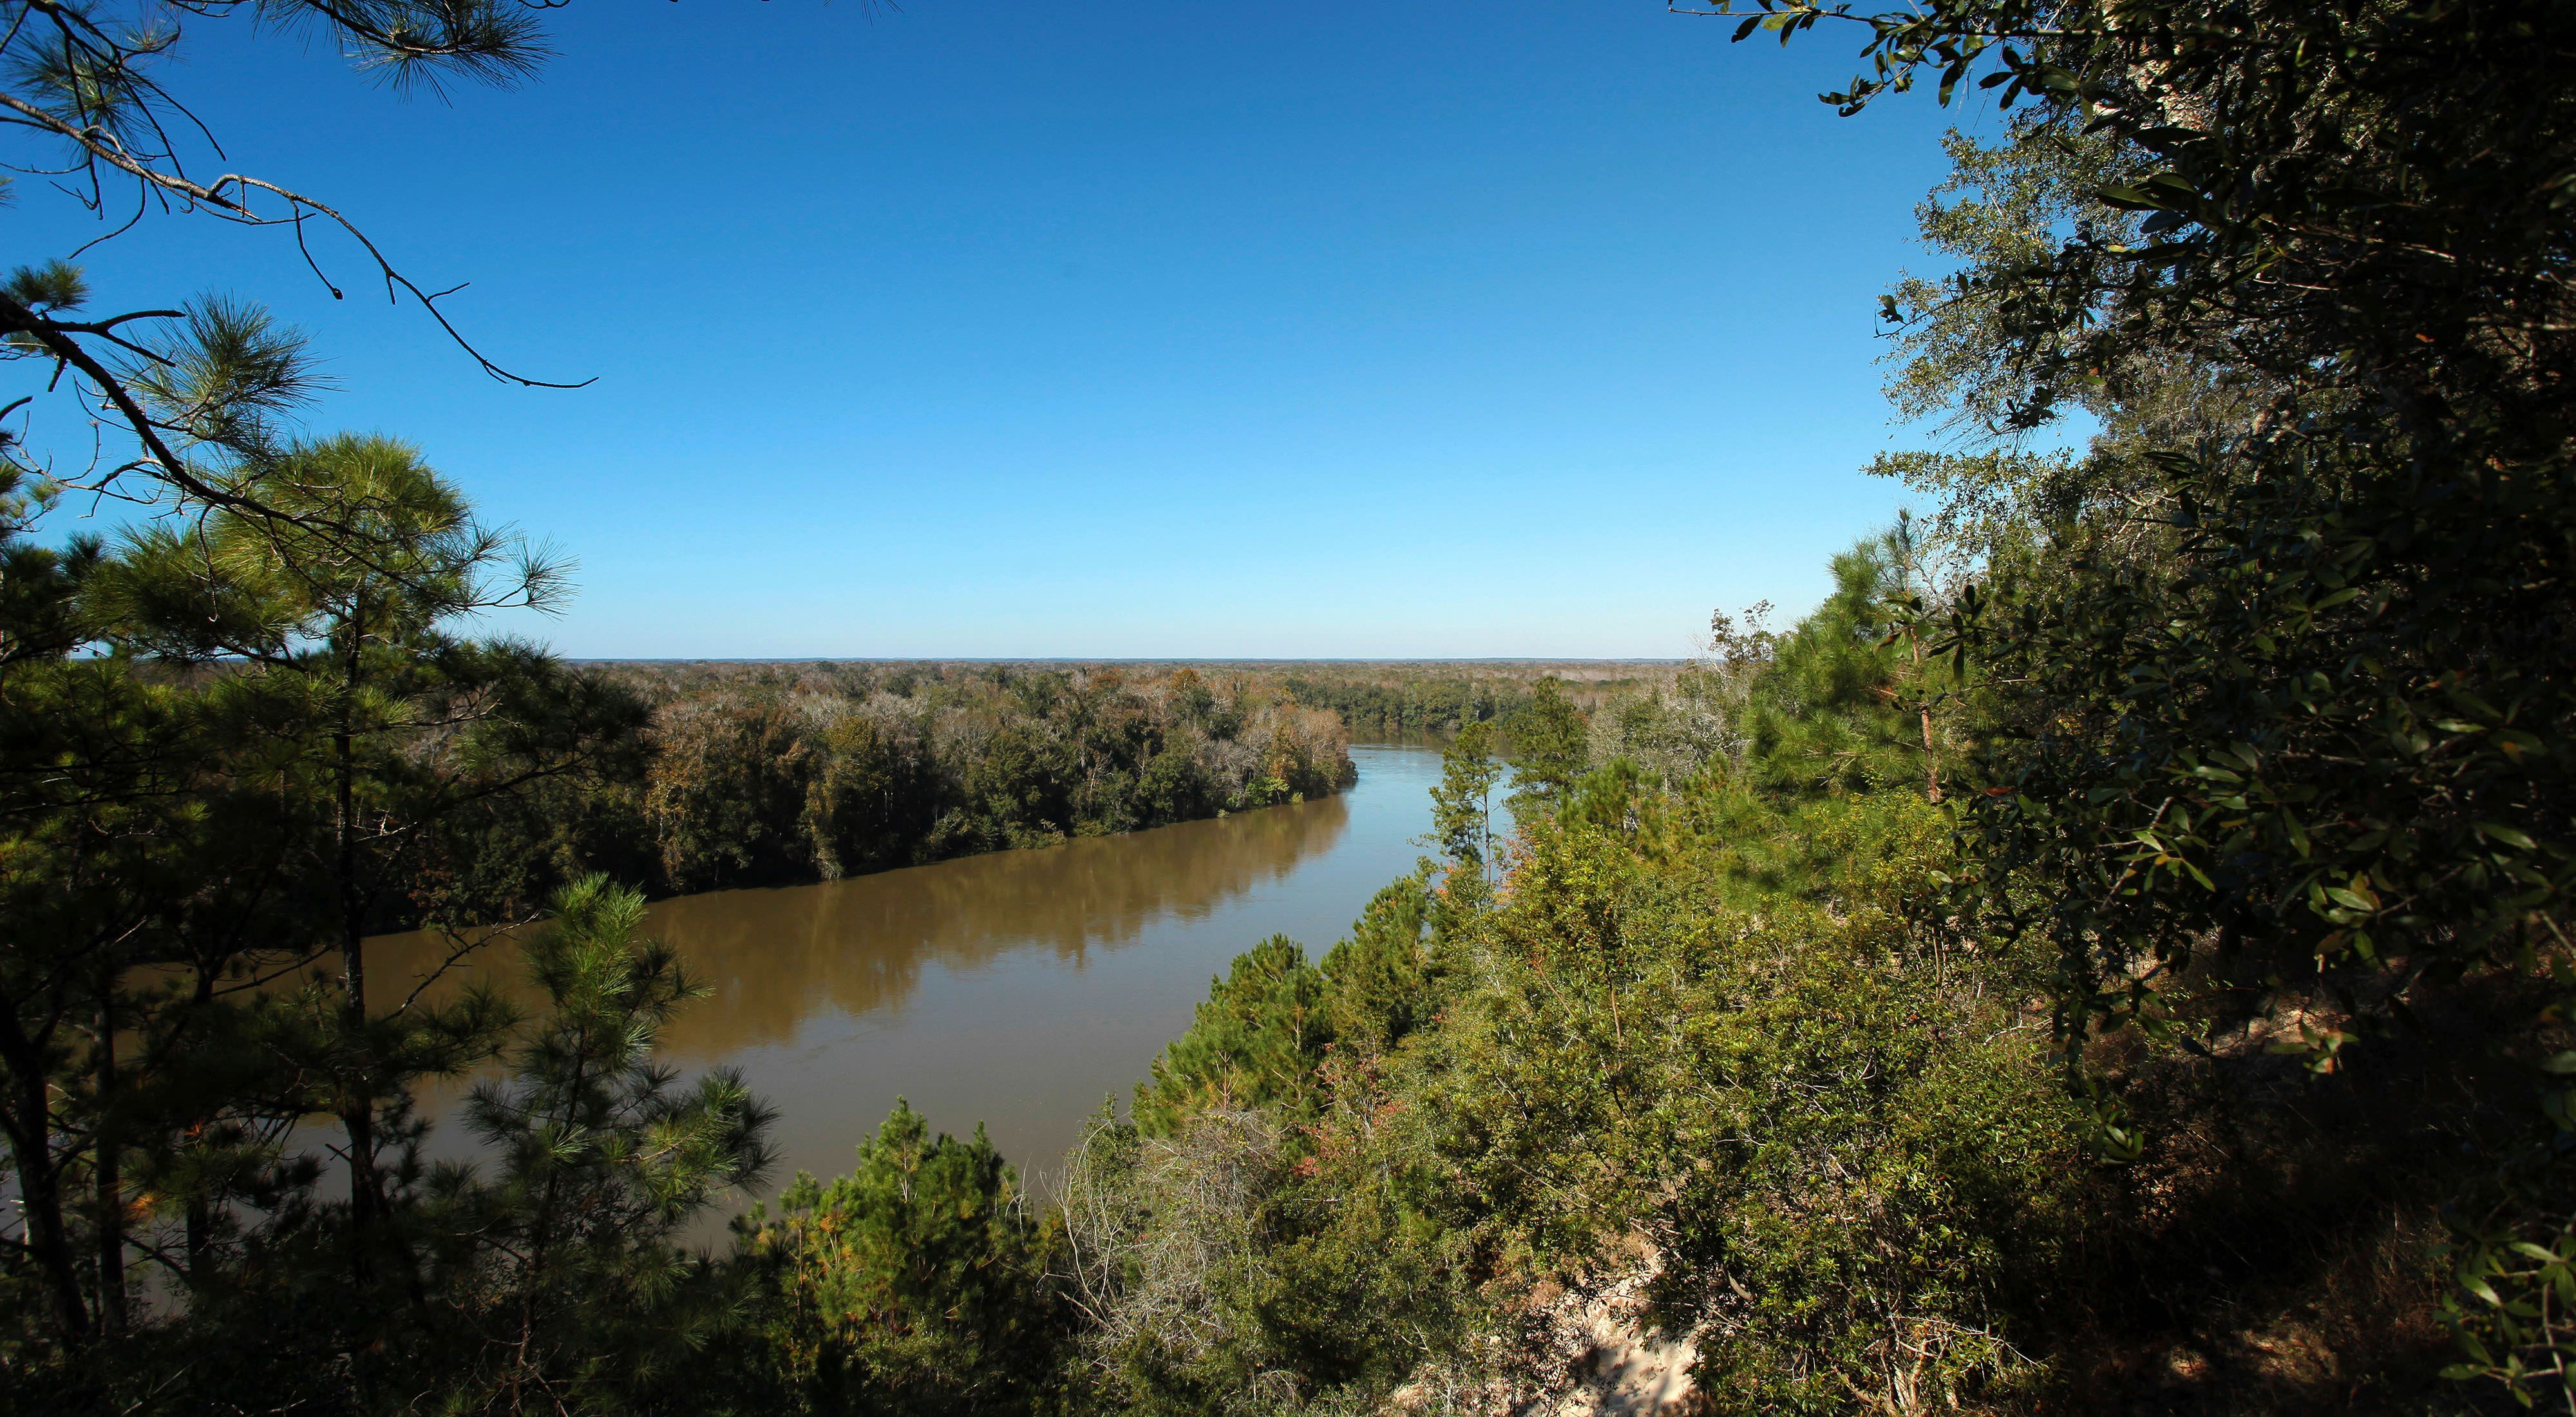 Apalachicola Bluffs and Ravines Preserve